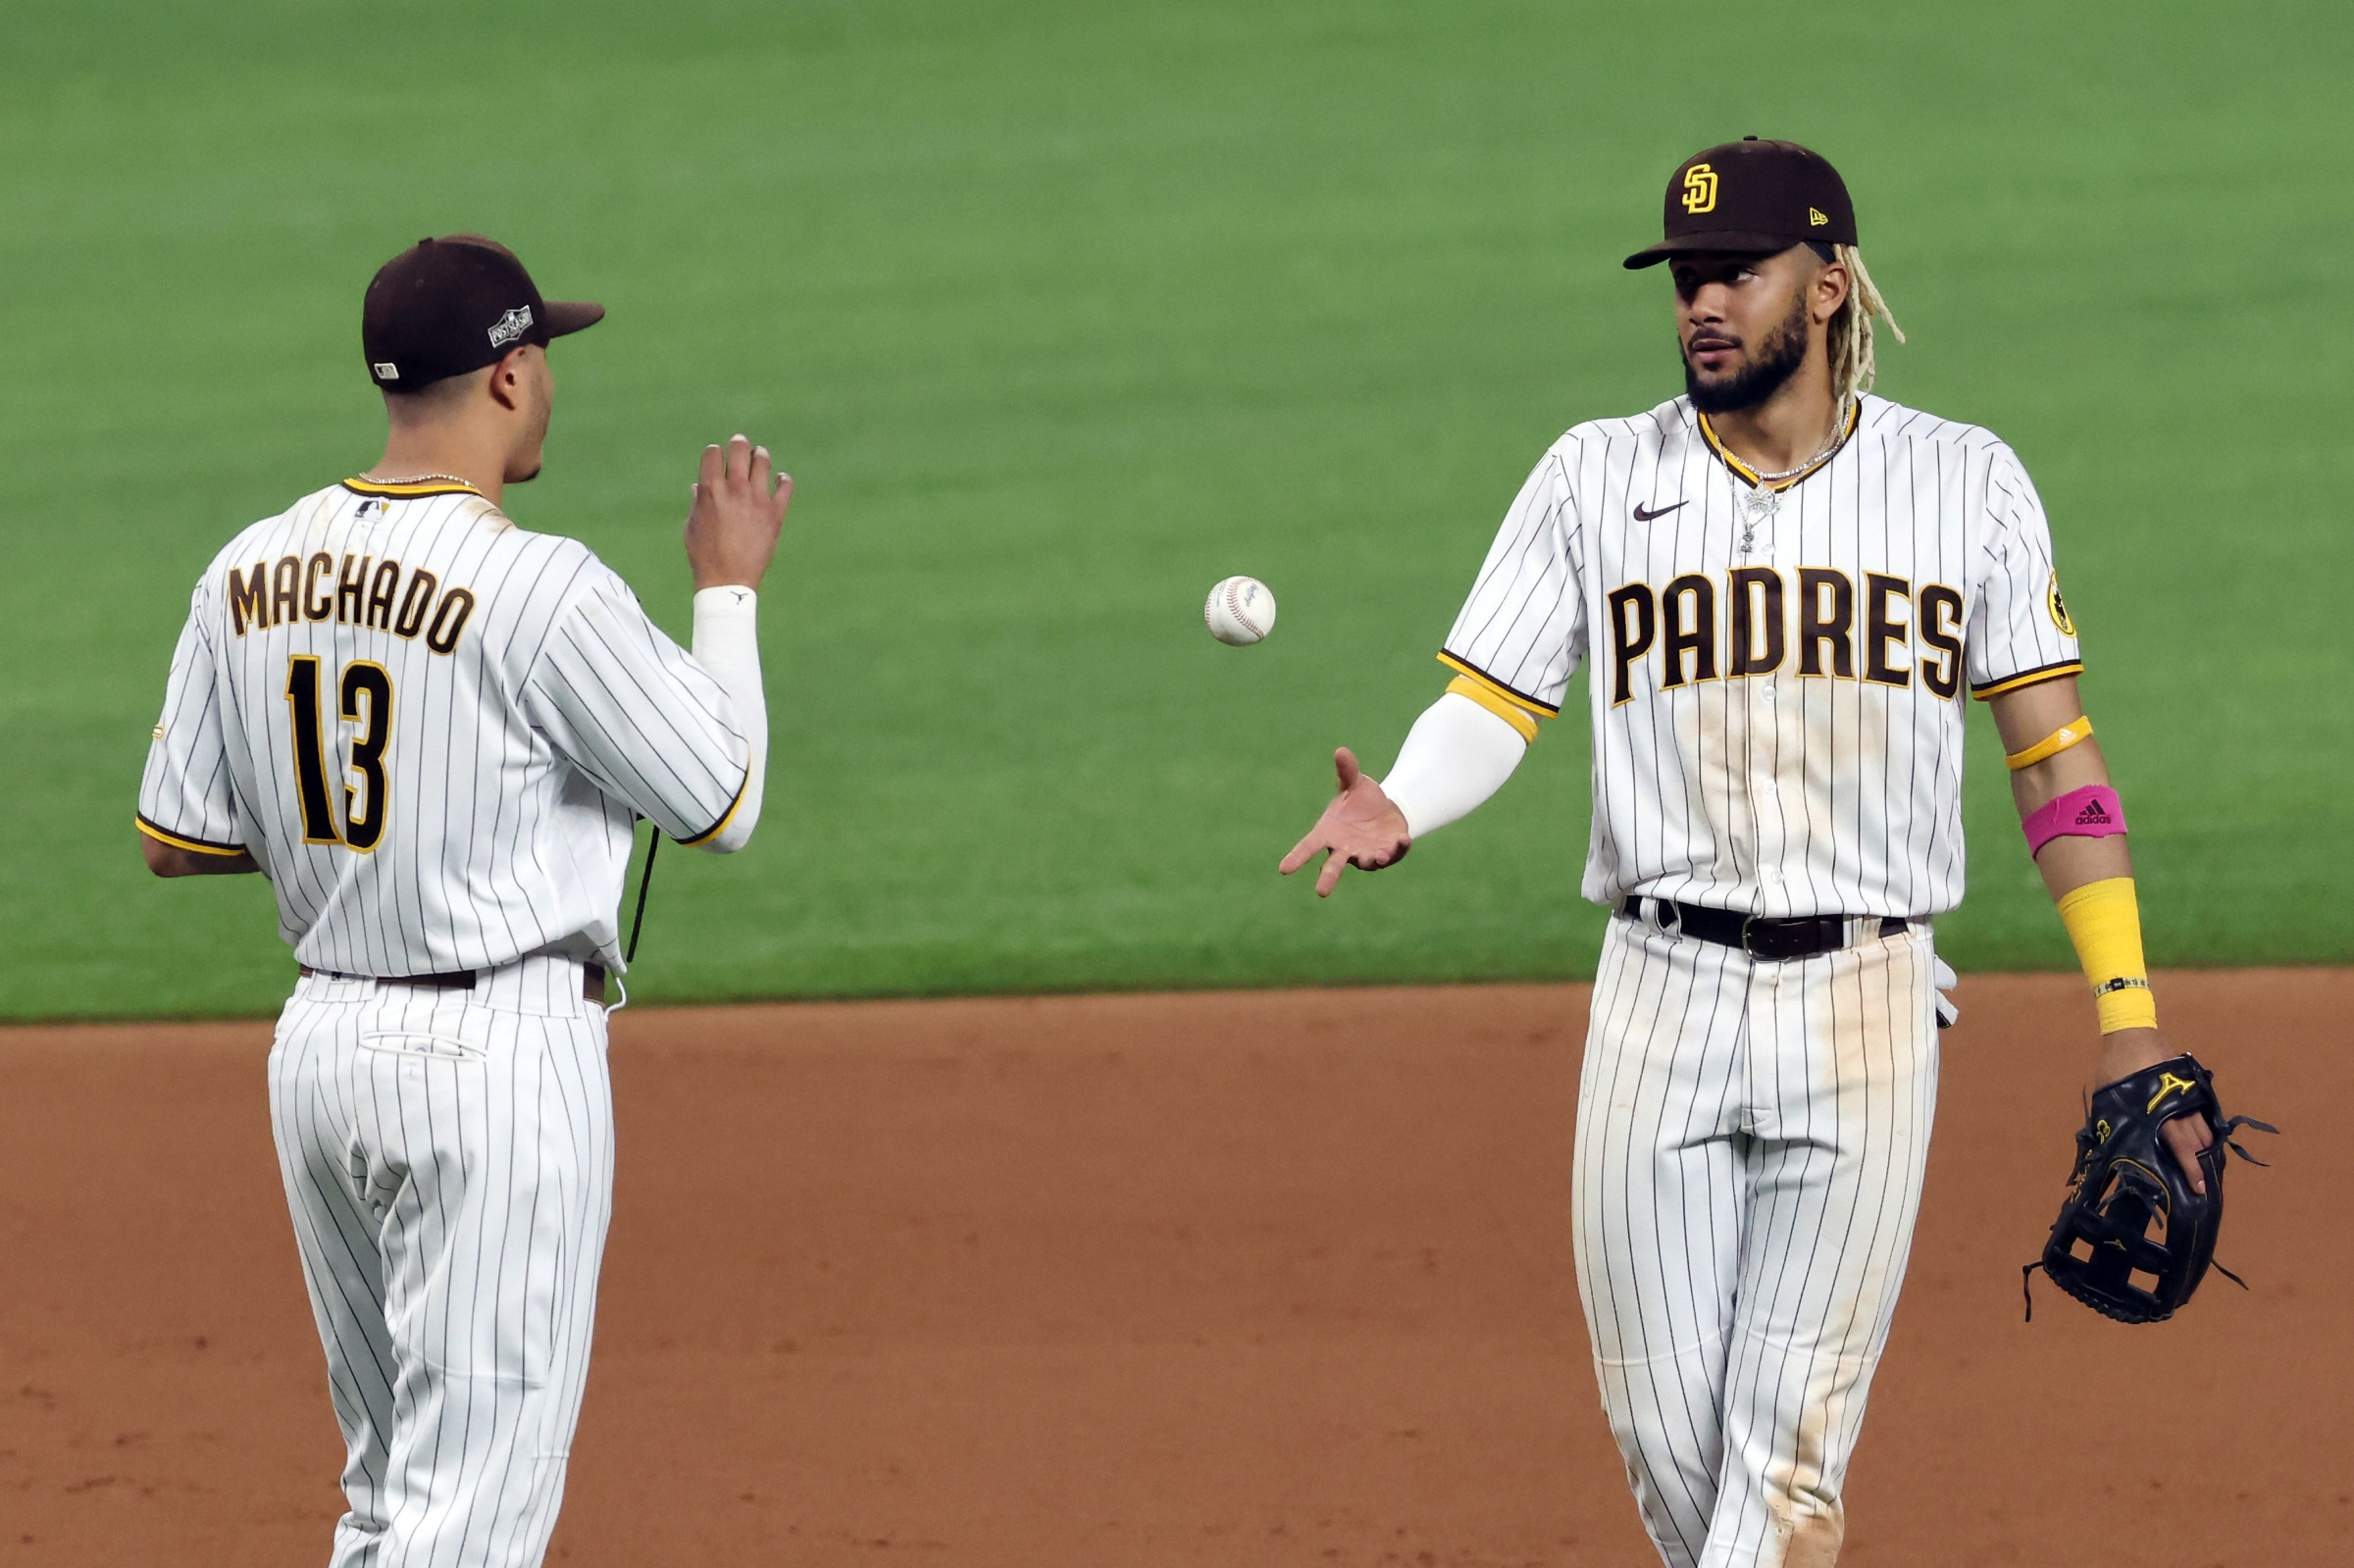 Fernando Tatis Jr. and Manny Machado, two good players the Padres already have.